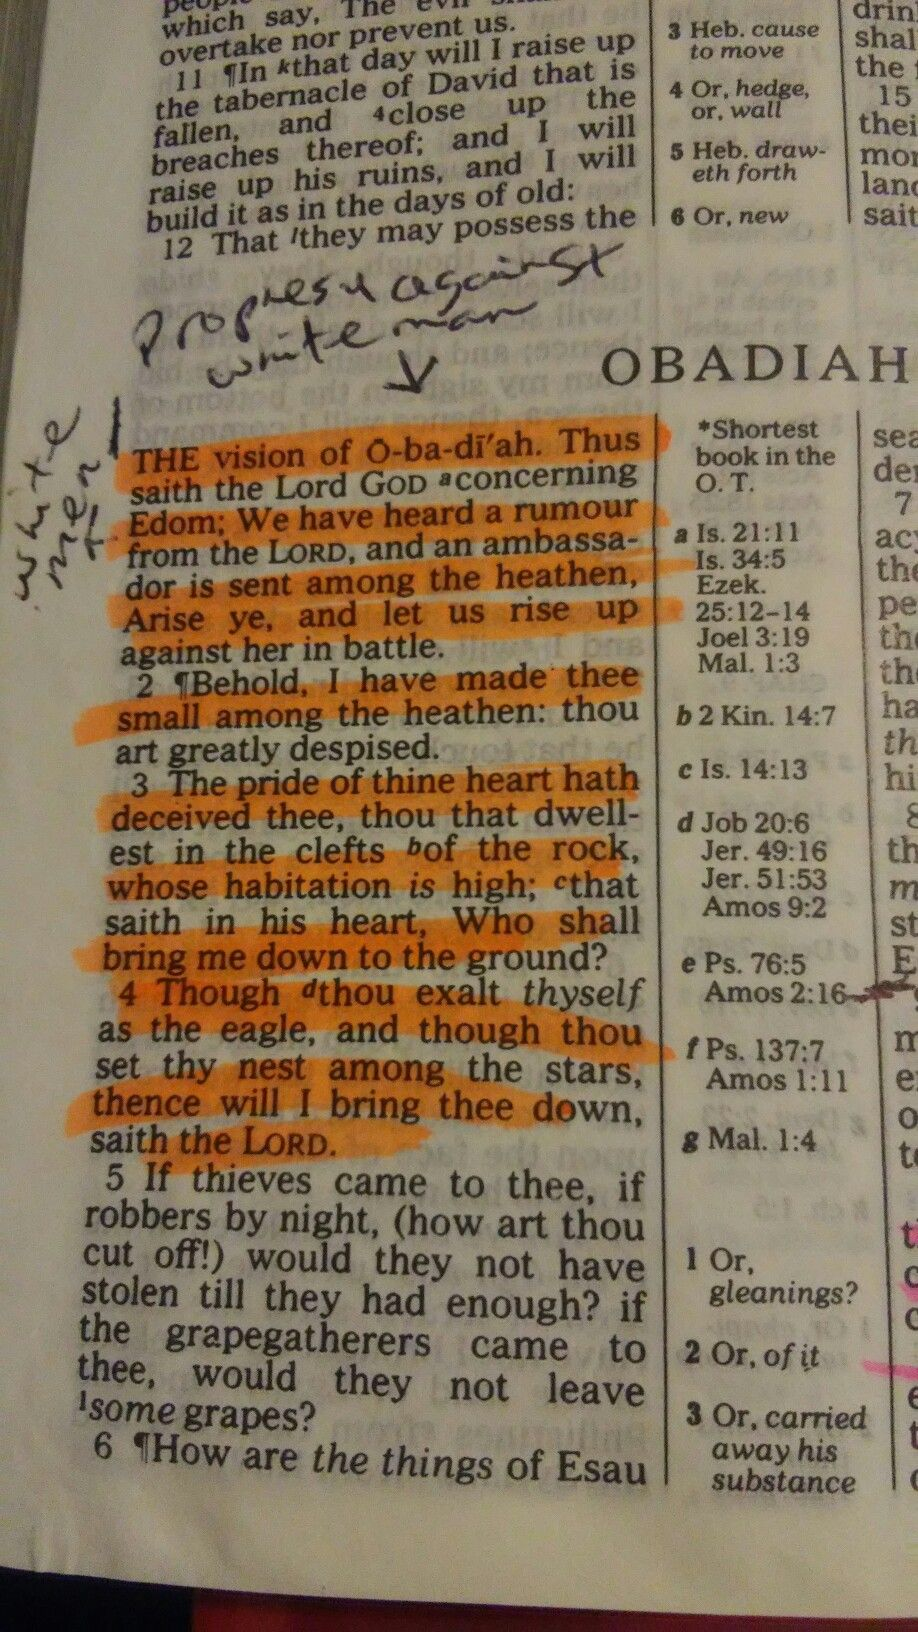 Obadiah is the shortest book in the biblethese scriptures